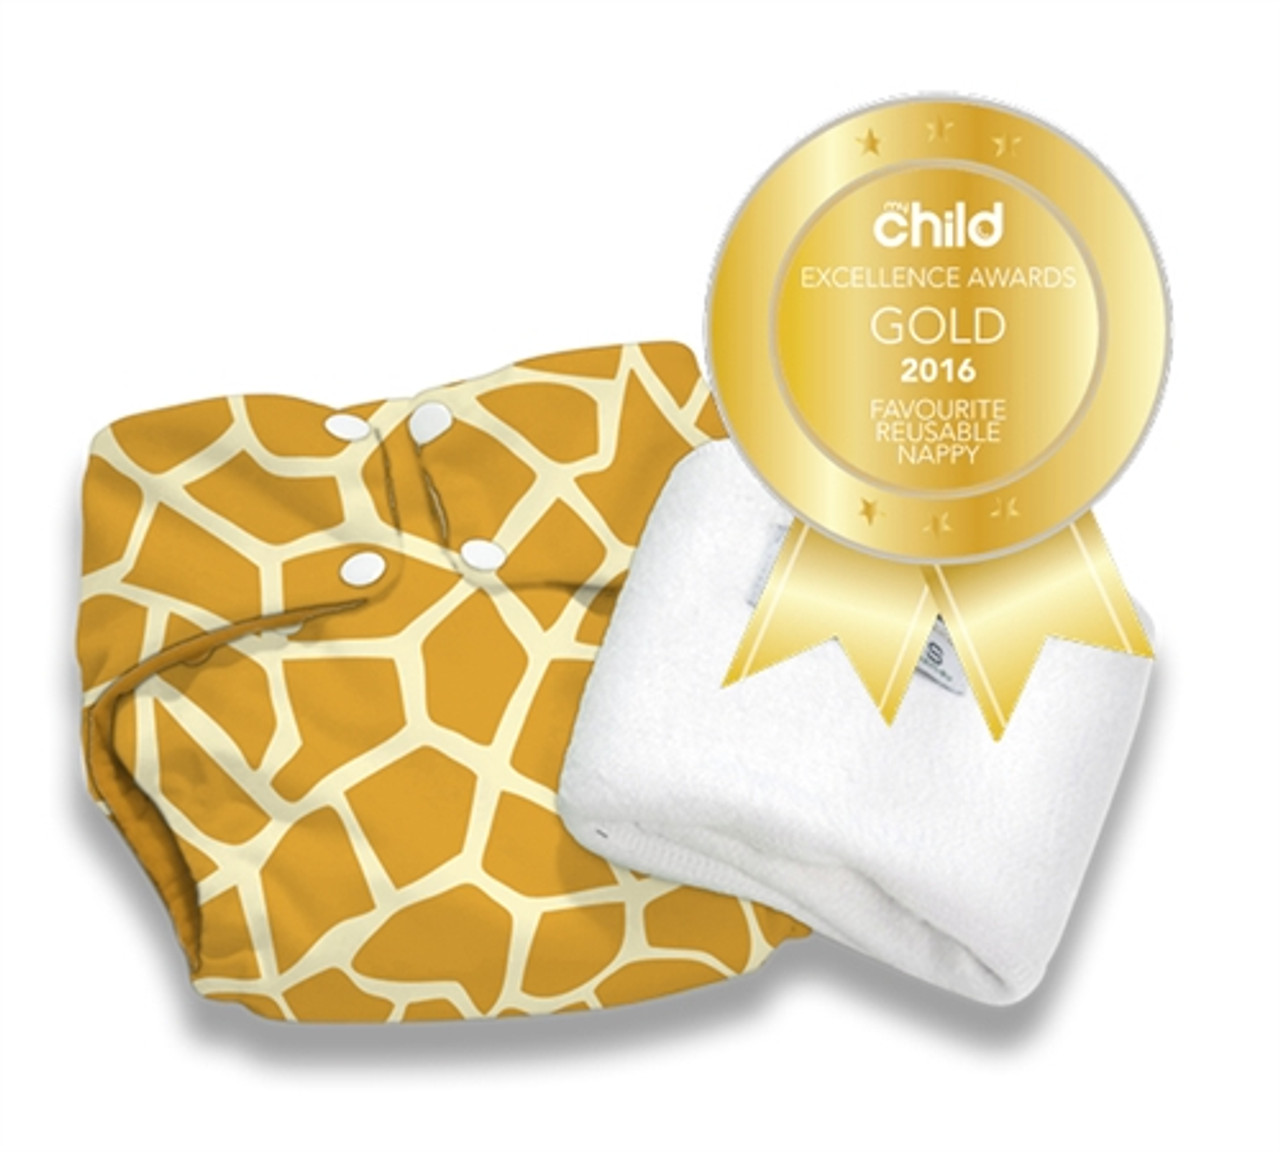 Pea Pods Modern Cloth Nappies One Size Fits Most at Baby Barn - Giraffe Print